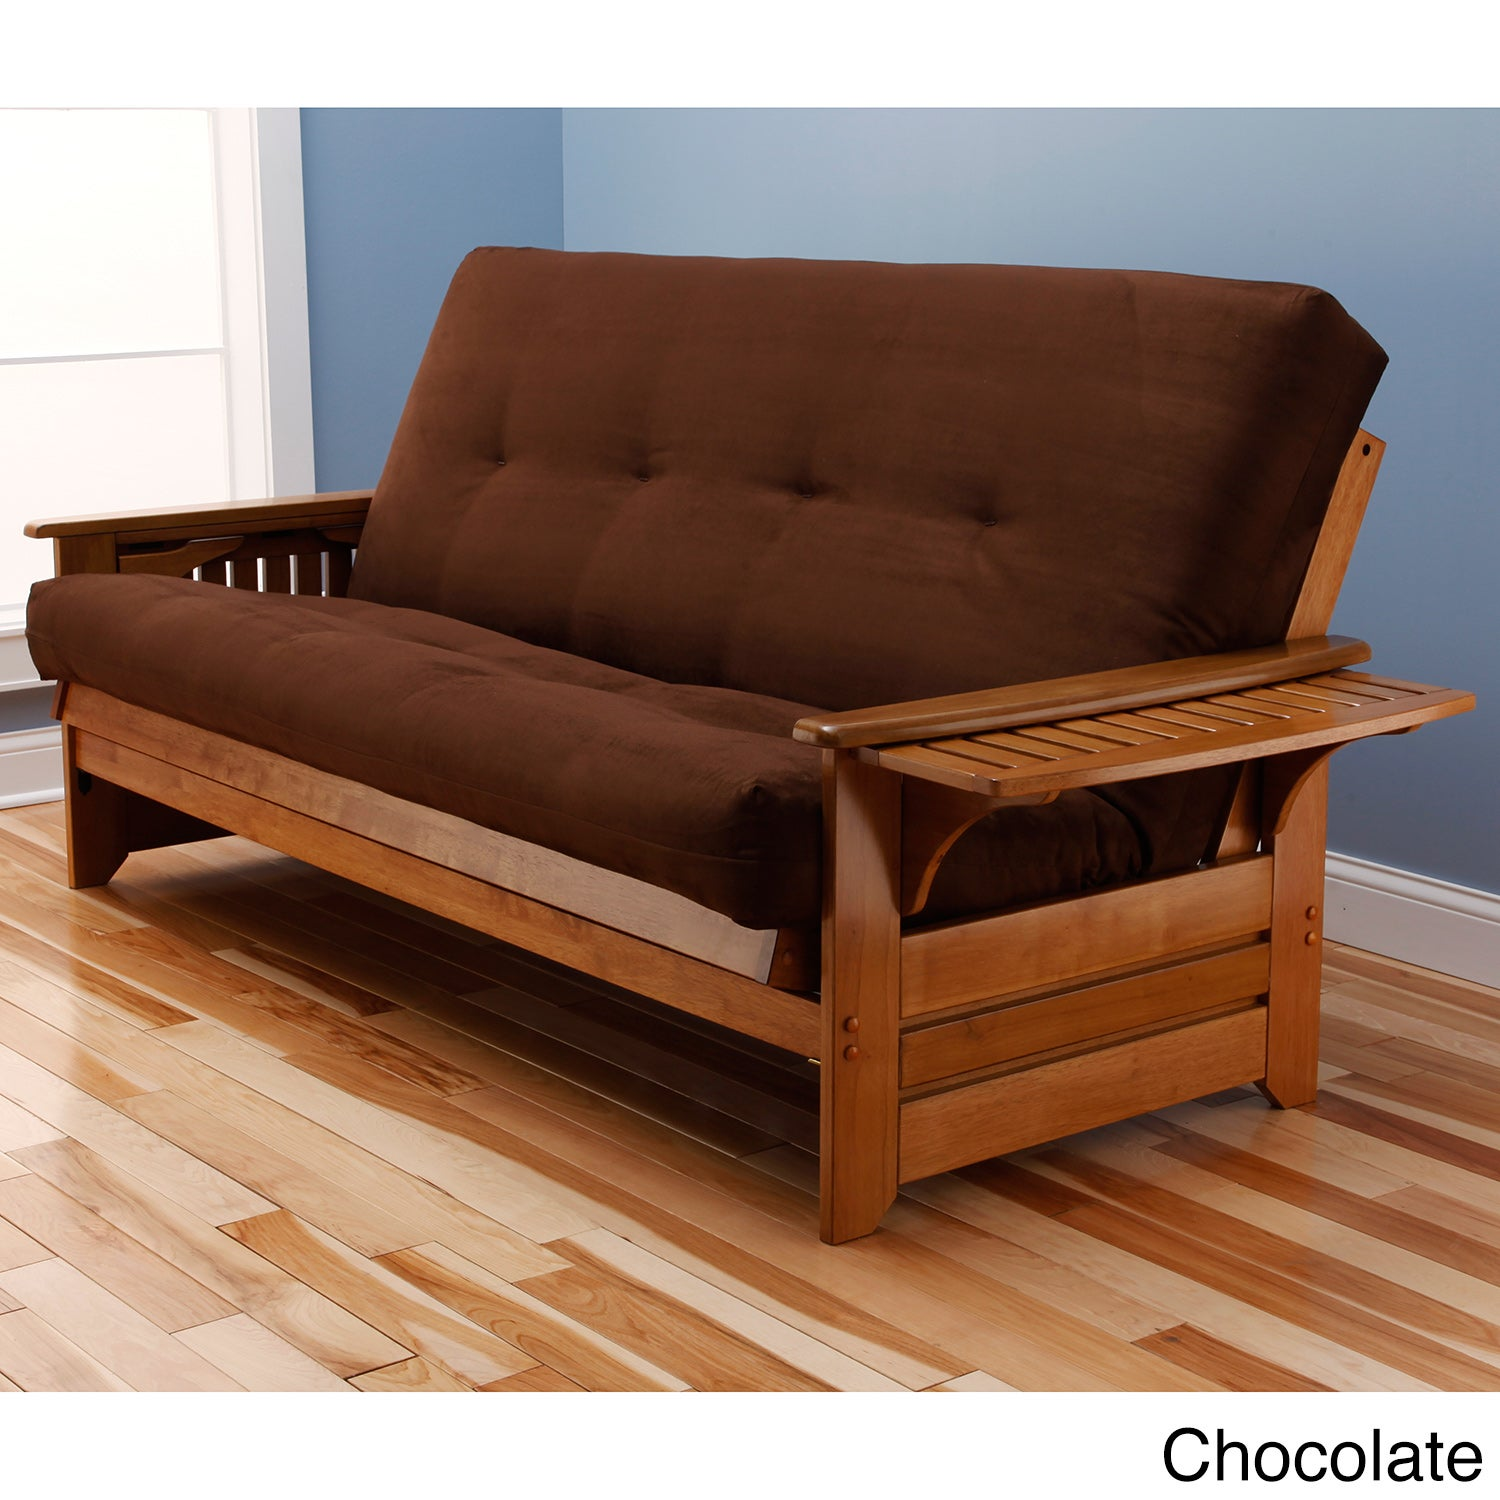 Ali Phonics Multi-Flex Futon Frame in Honey Oak Wood with Innerspring Suede Mattress at Sears.com